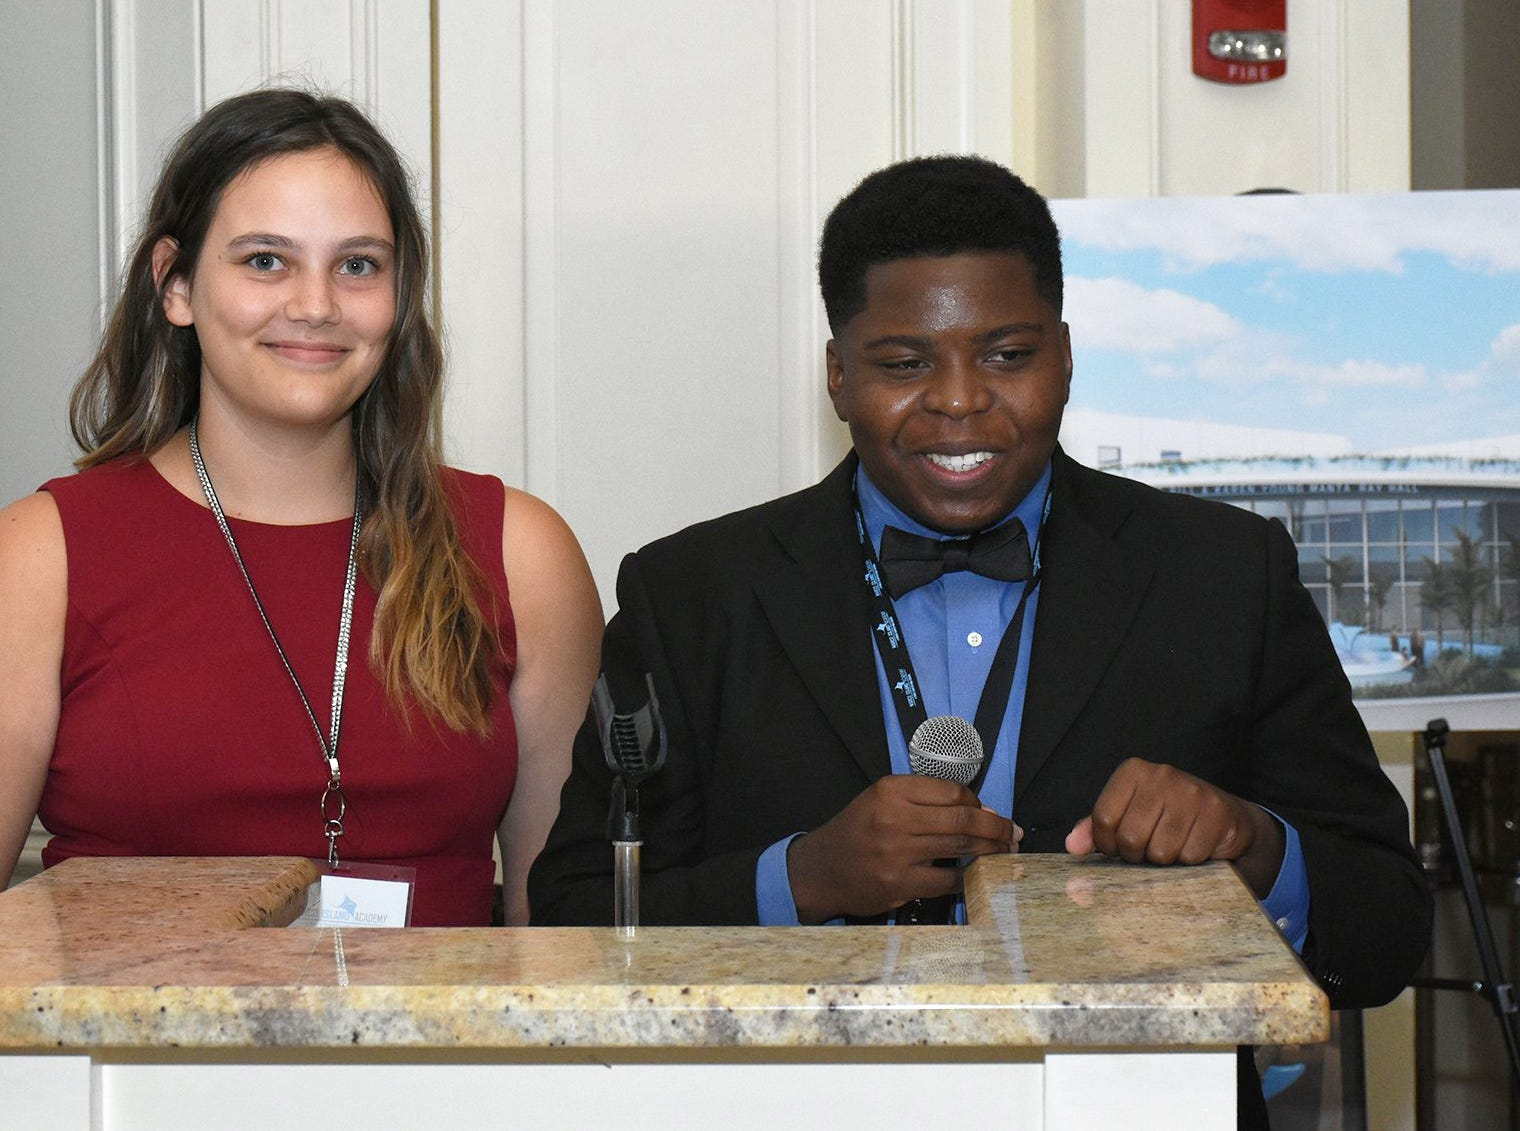 Student athletes Nicole Brunson and Evans Metelus serve as co-hosts. Marco Island Academy held 'Cheers for Champions,' a benefit dinner to raise funds for the school's athletic programs, Saturday evening at Hideaway Beach Club.